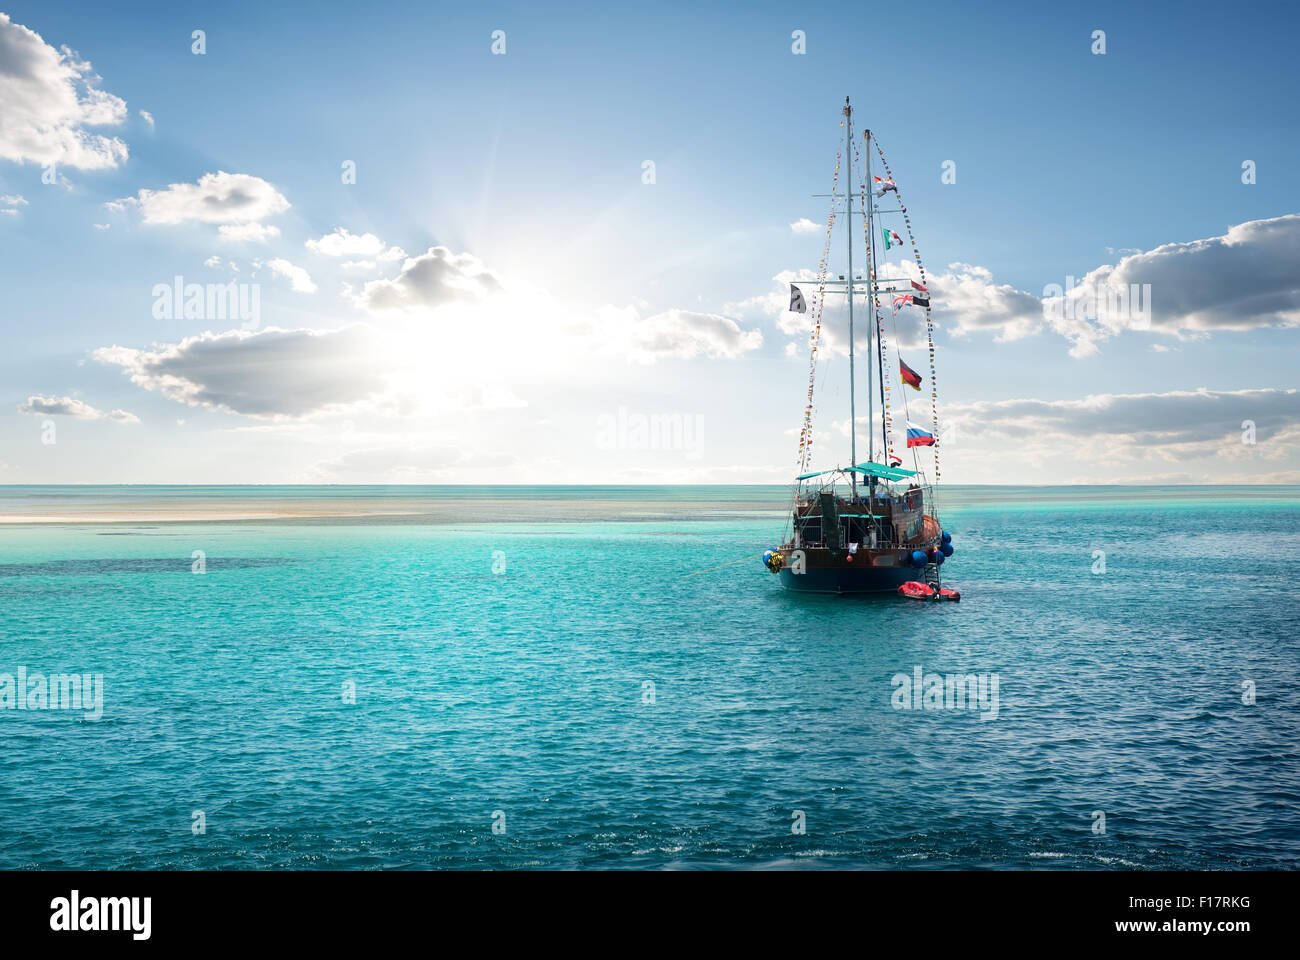 Yacht in the sea near island at sunrise - Stock Image